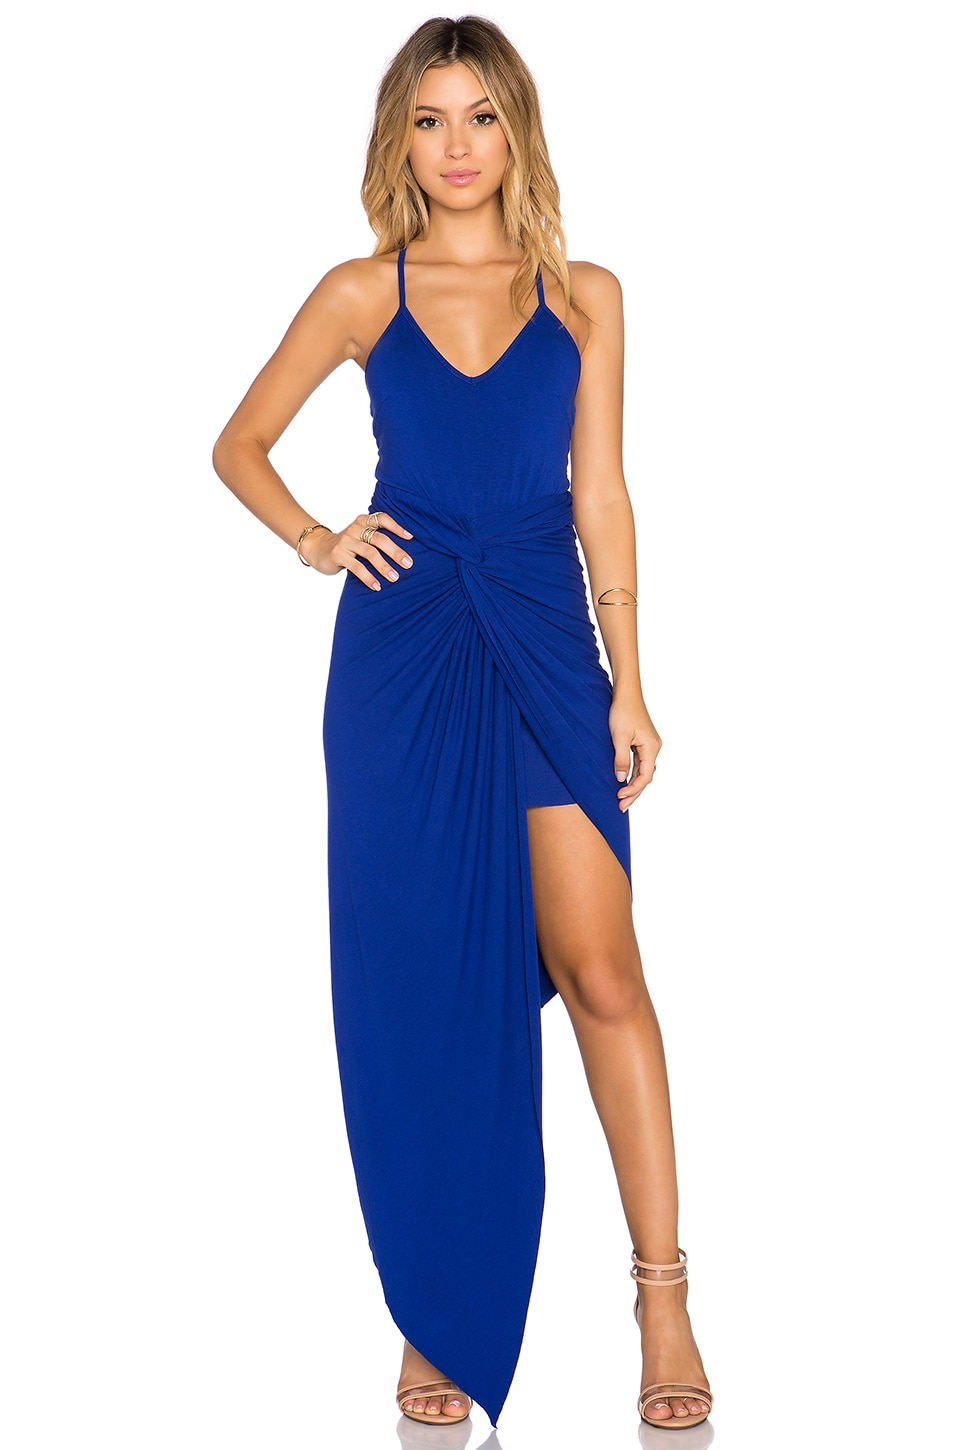 Toby Heart Ginger x REVOLVE Knots Maxi Dress in Cobalt